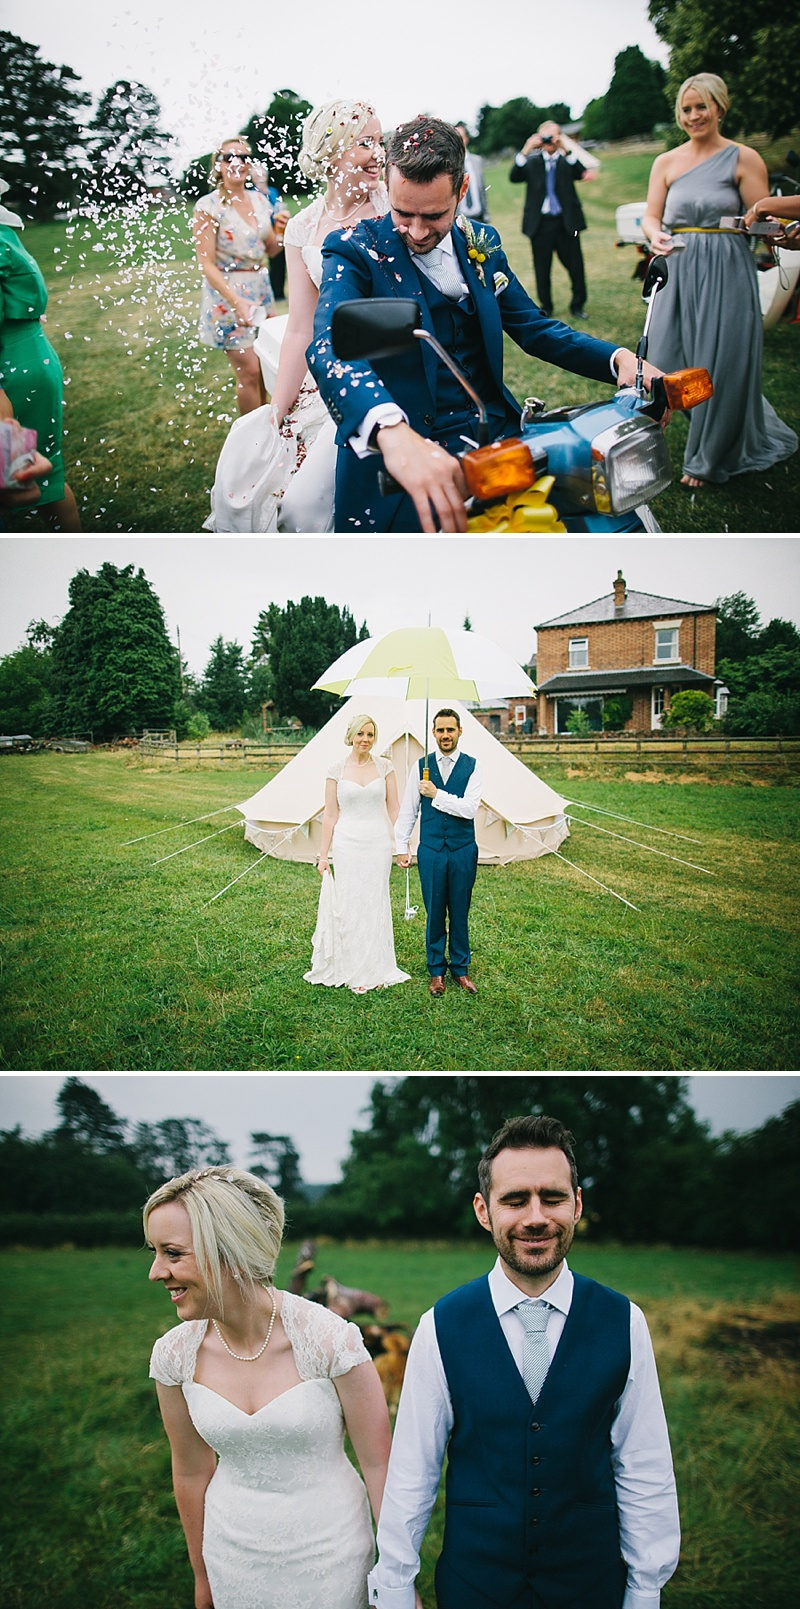 Rustic Tipi Wedding With Yellow Details In Shropshire Bride In Sienna By Sassi Holford Images By Chris Barber 0016 If Shes Beside Me.